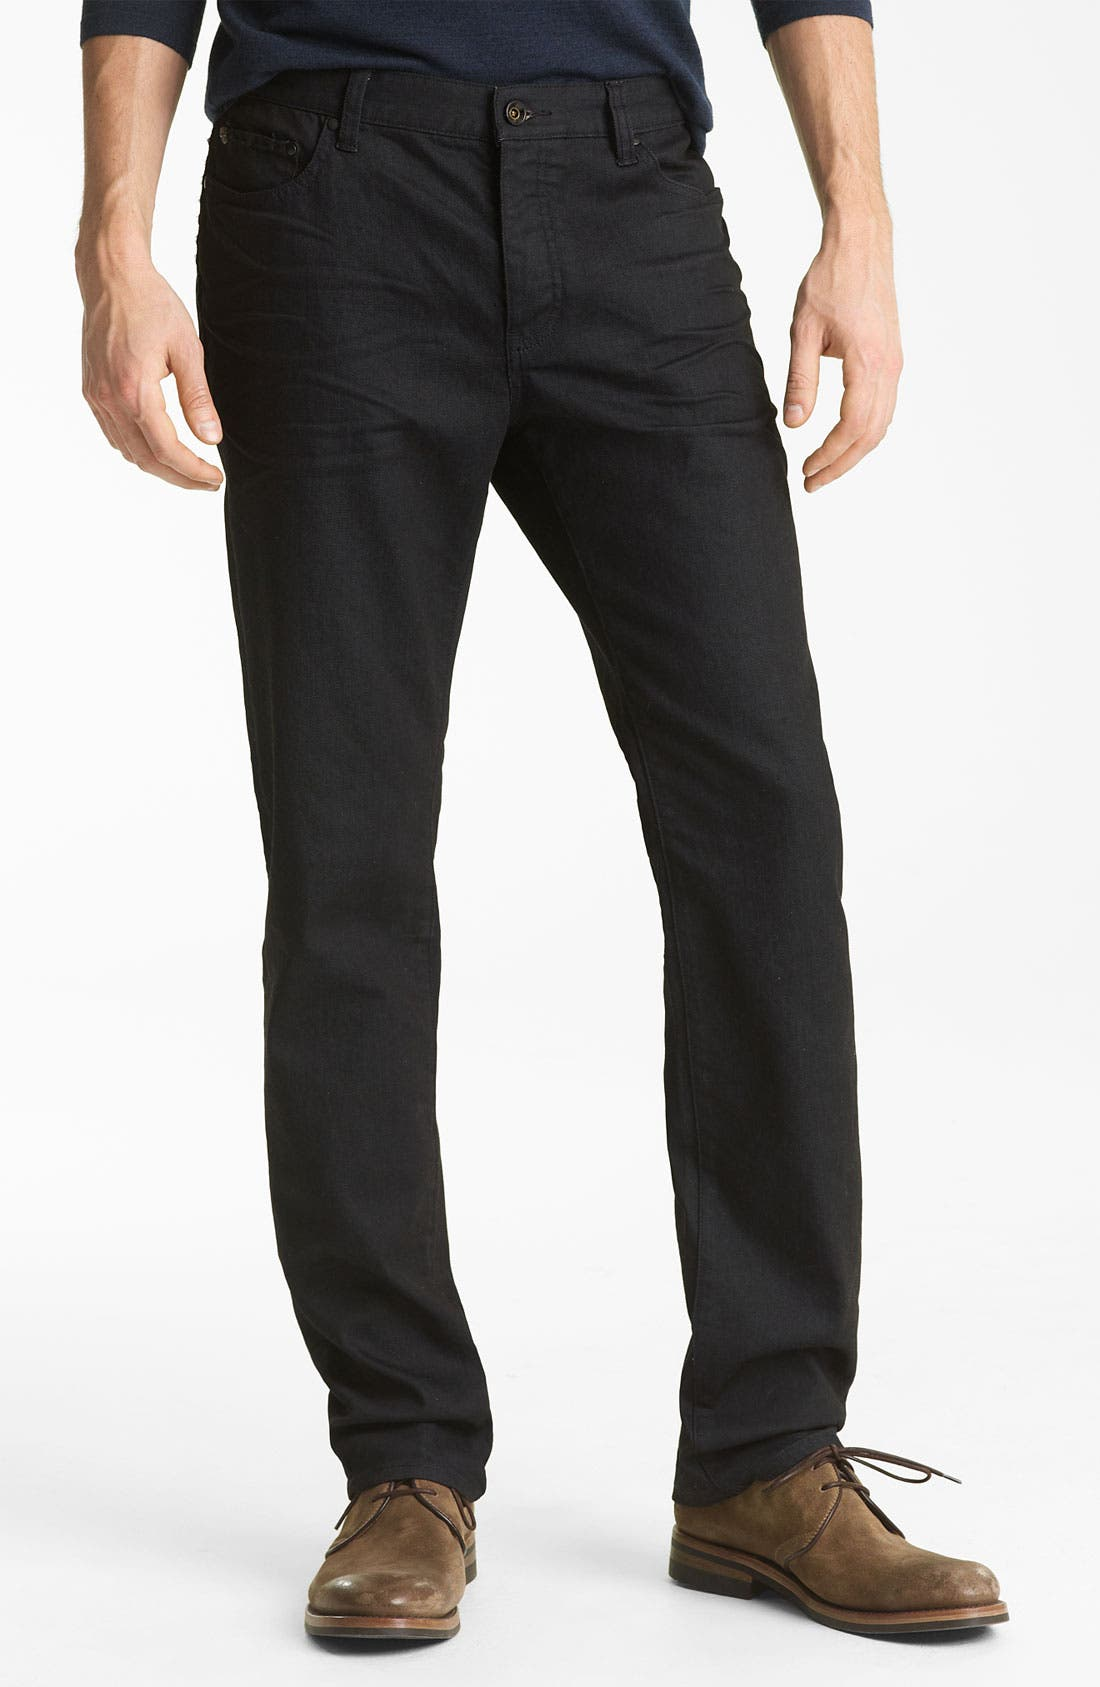 Alternate Image 1 Selected - John Varvatos Collection Slim Fit Jeans (Navy Wash)